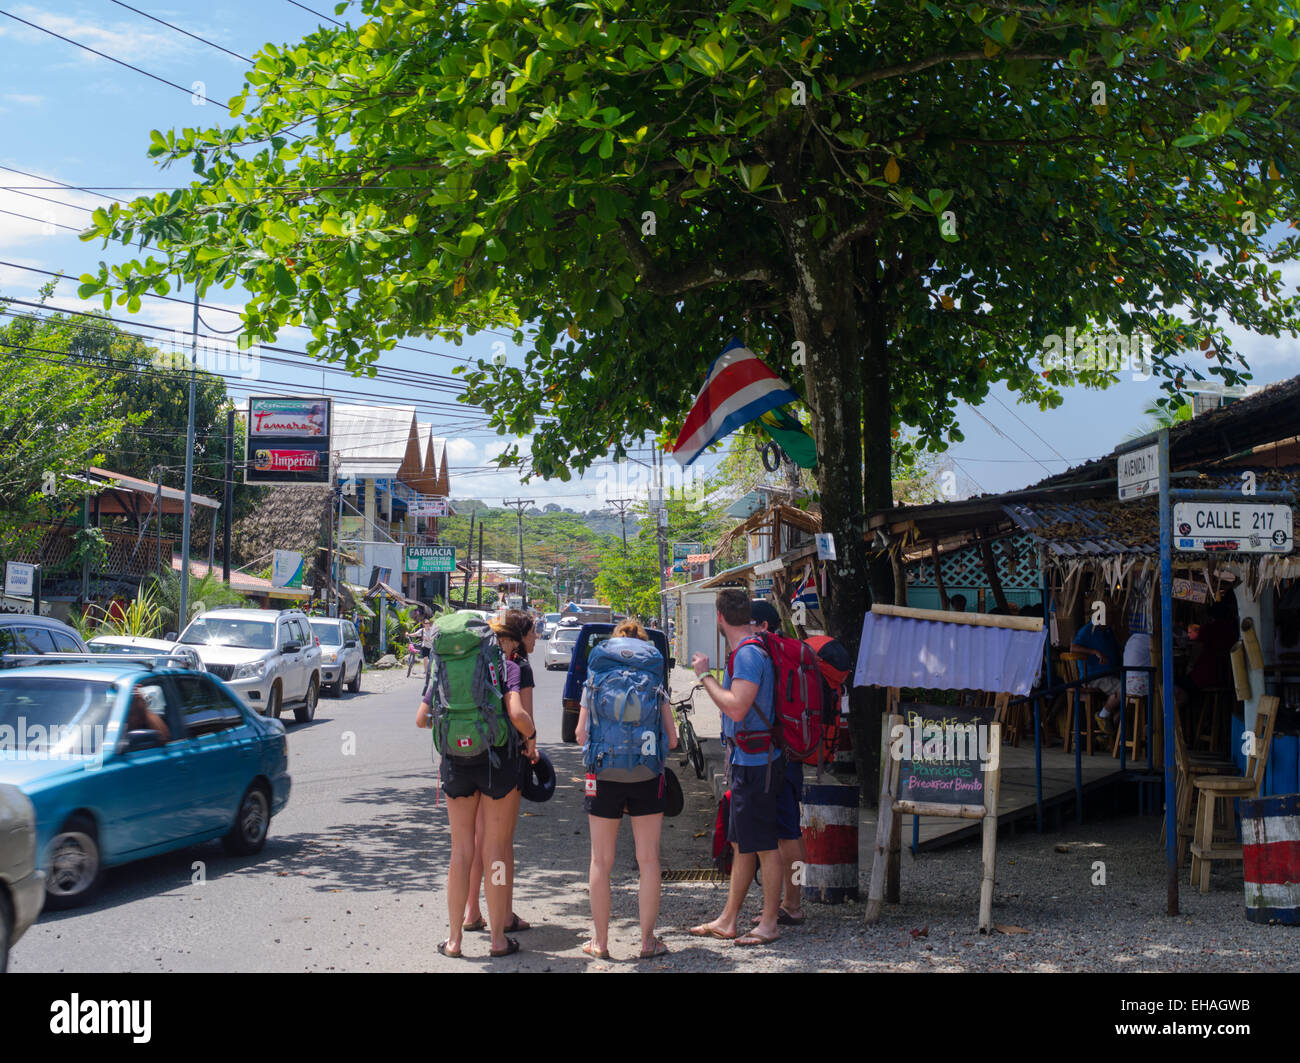 Canadian backpackers in puerto viejo limon costa rica stock photo 79523399 alamy - Puerto limon costa rica ...